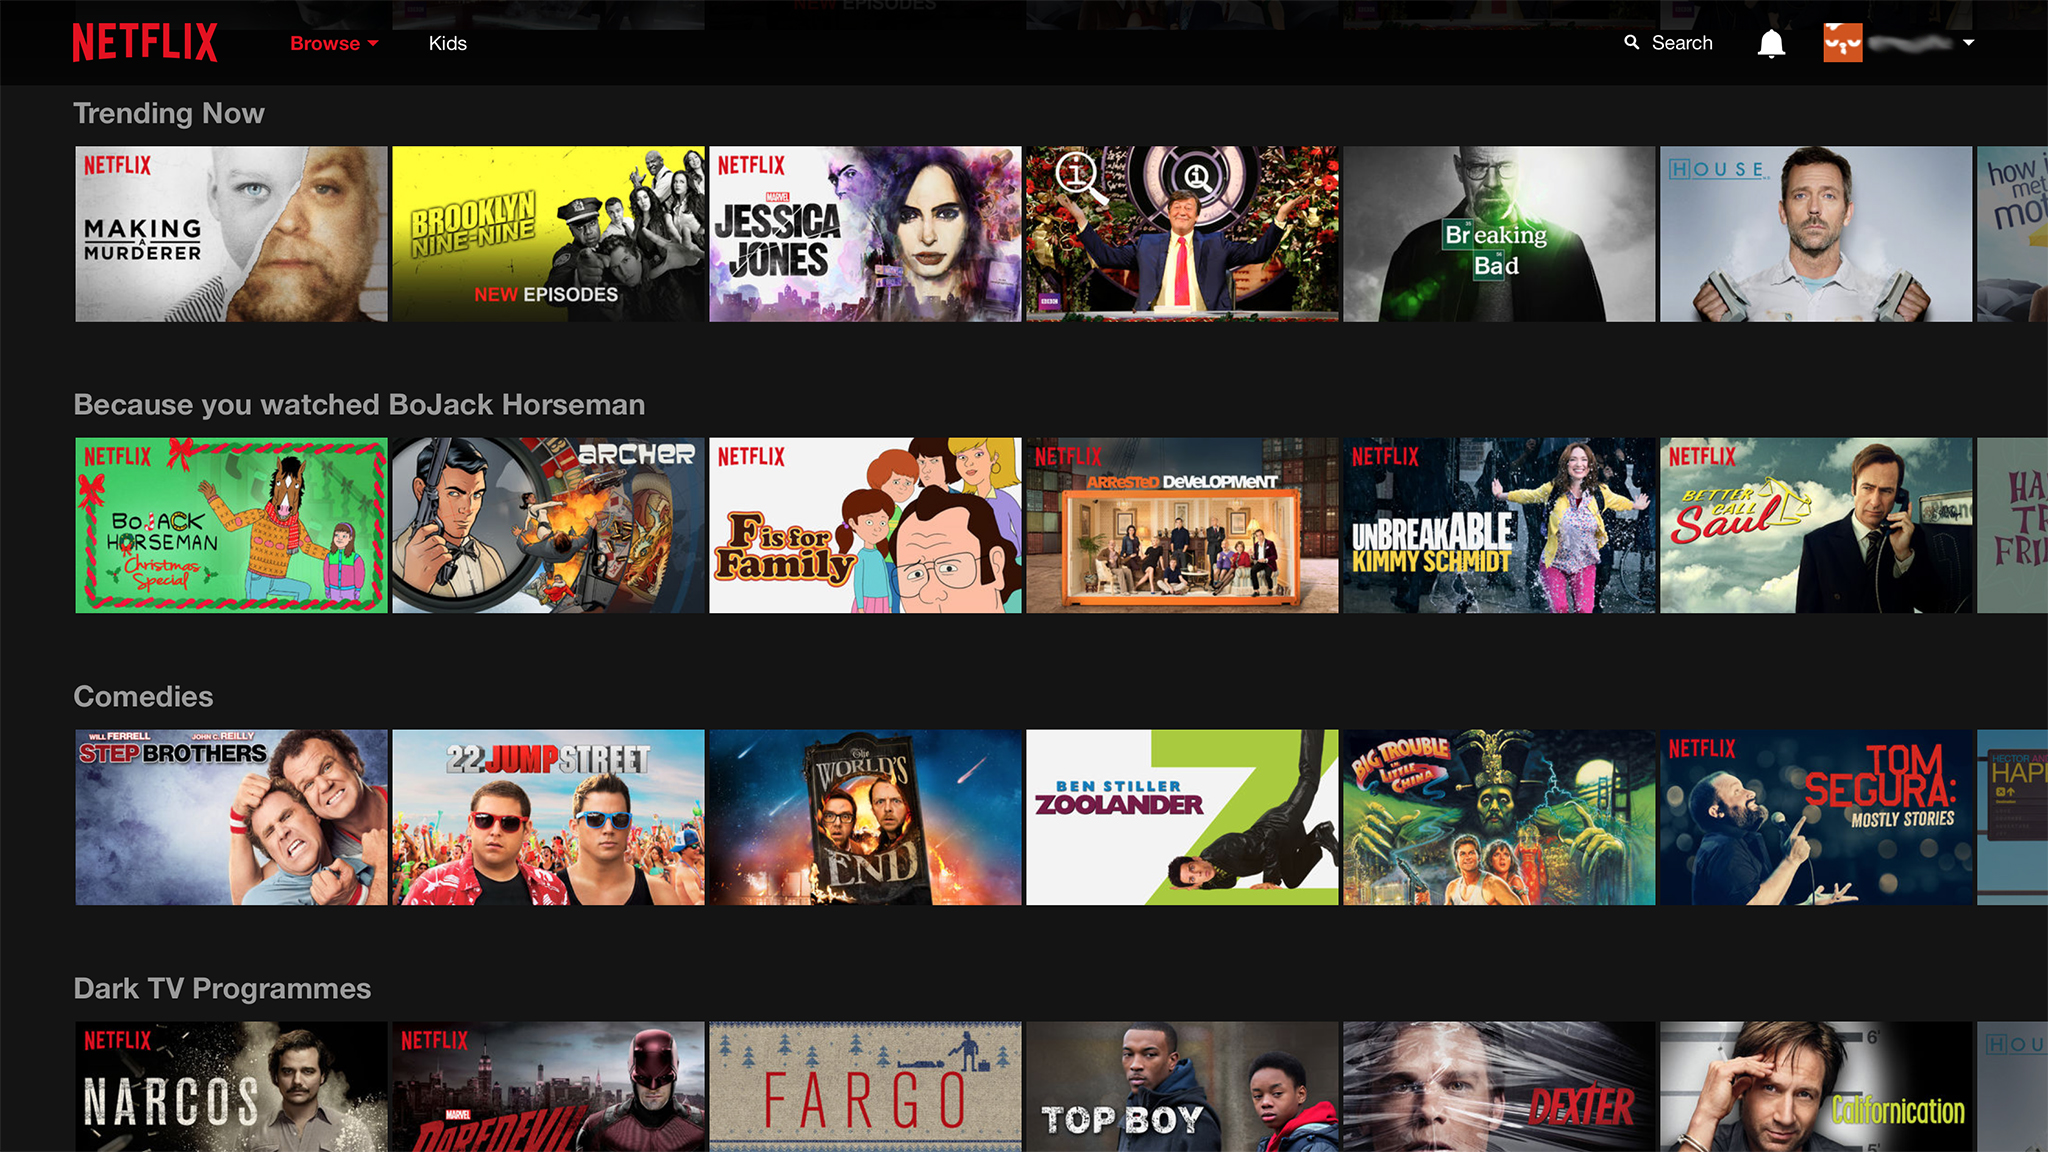 How to Make Netflix HD or Ultra HD: The Easiest Way to Change